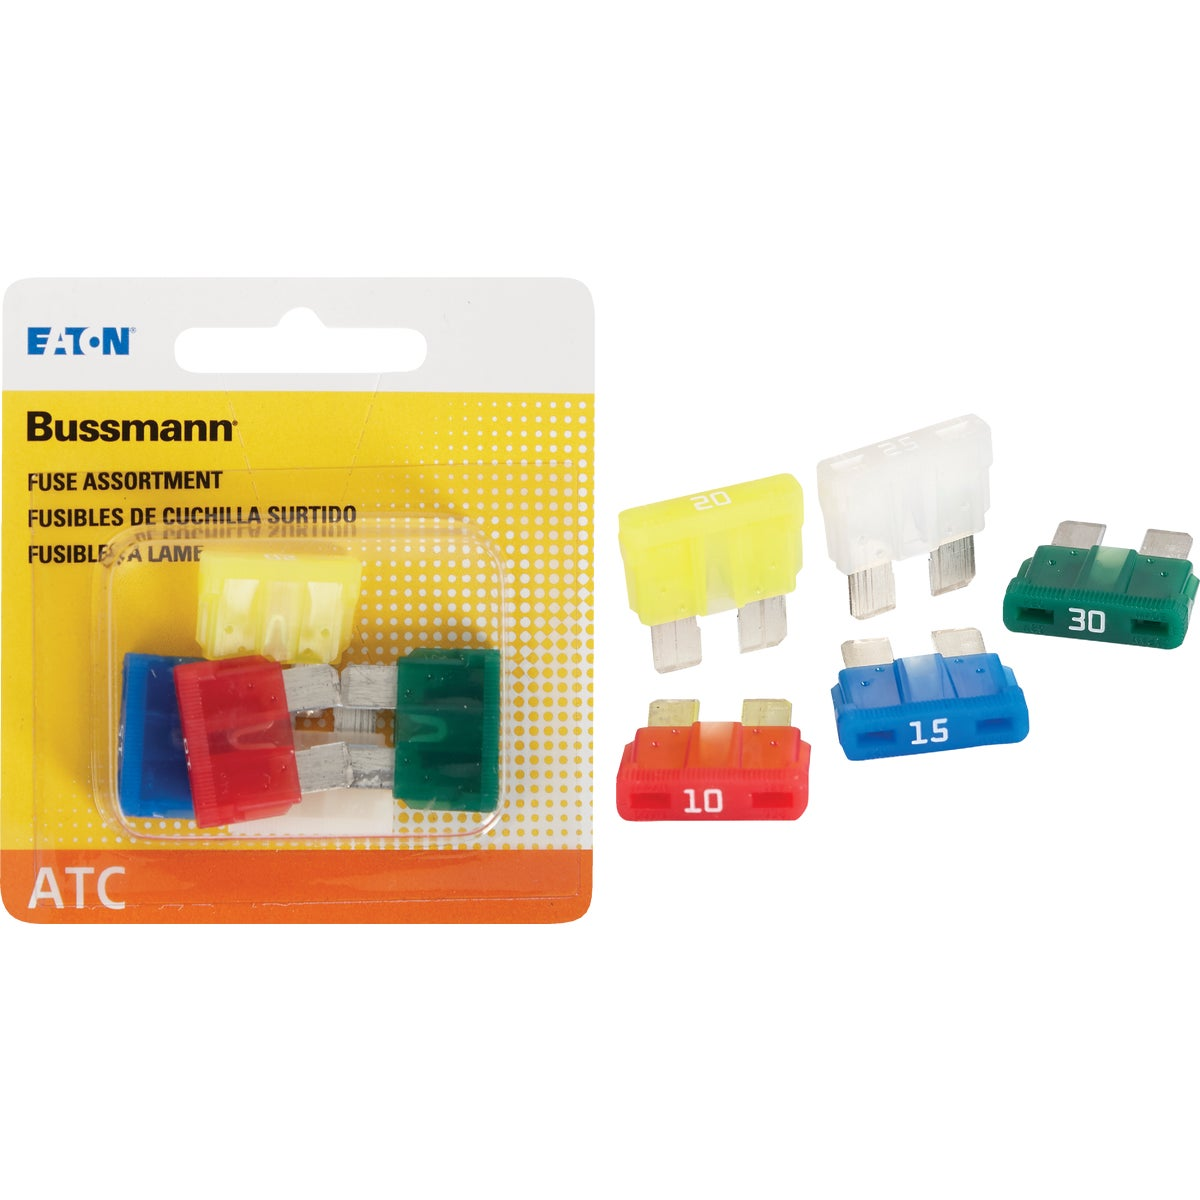 5PK FUSE ASSORTMENT - BP/ATC-A5-RP by Bussmann Cooper